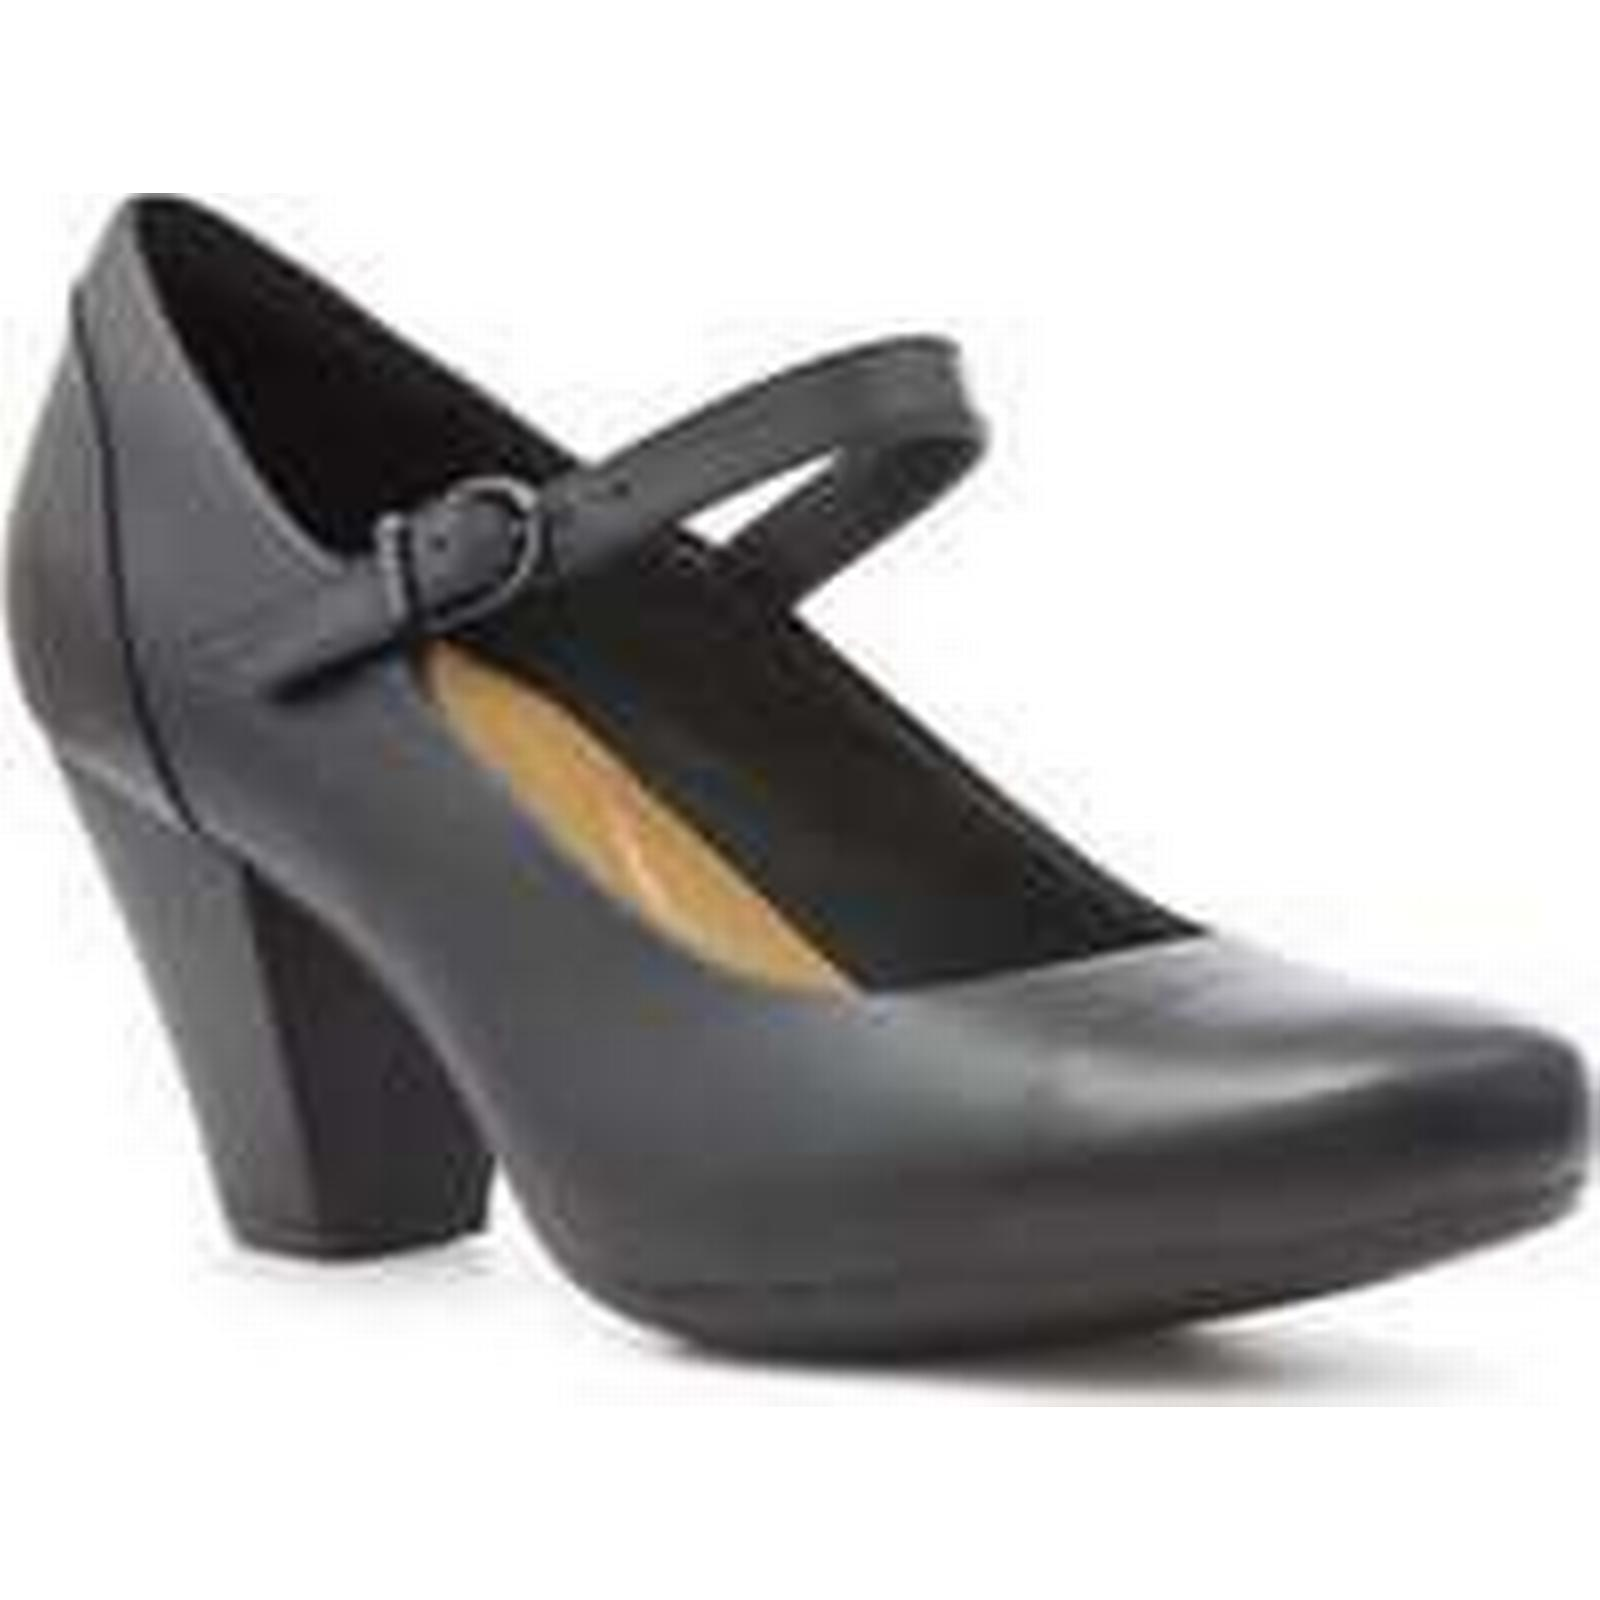 Clarks Black Womens Black Clarks Leather Heeled Court Shoe 6a7c12